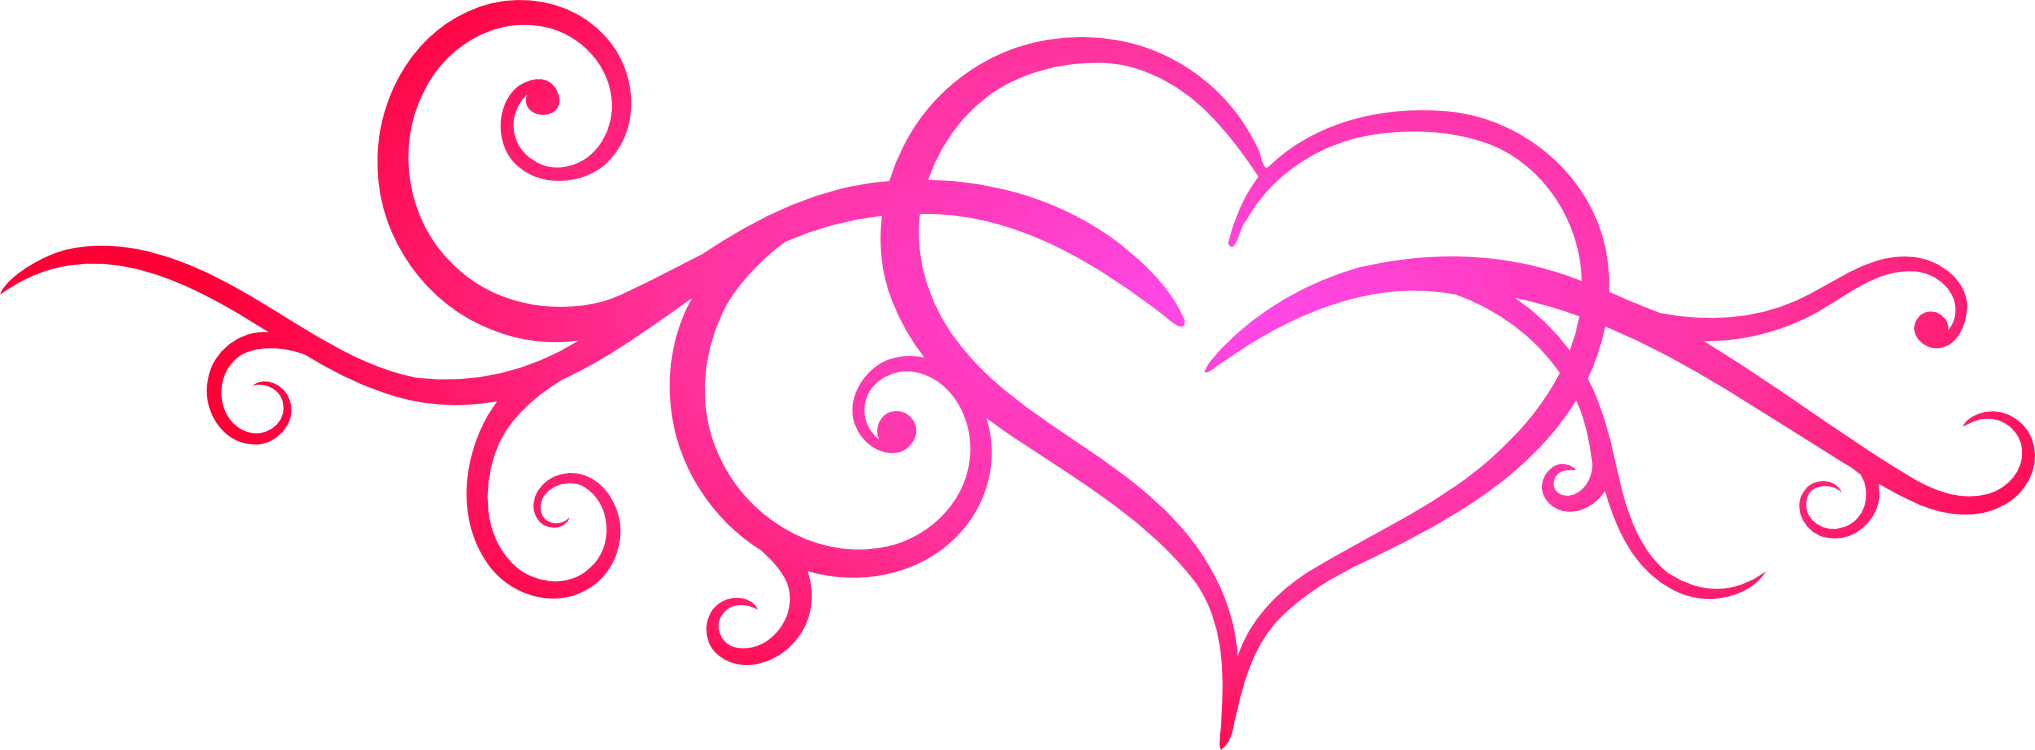 Squiggly clipart transparent background.